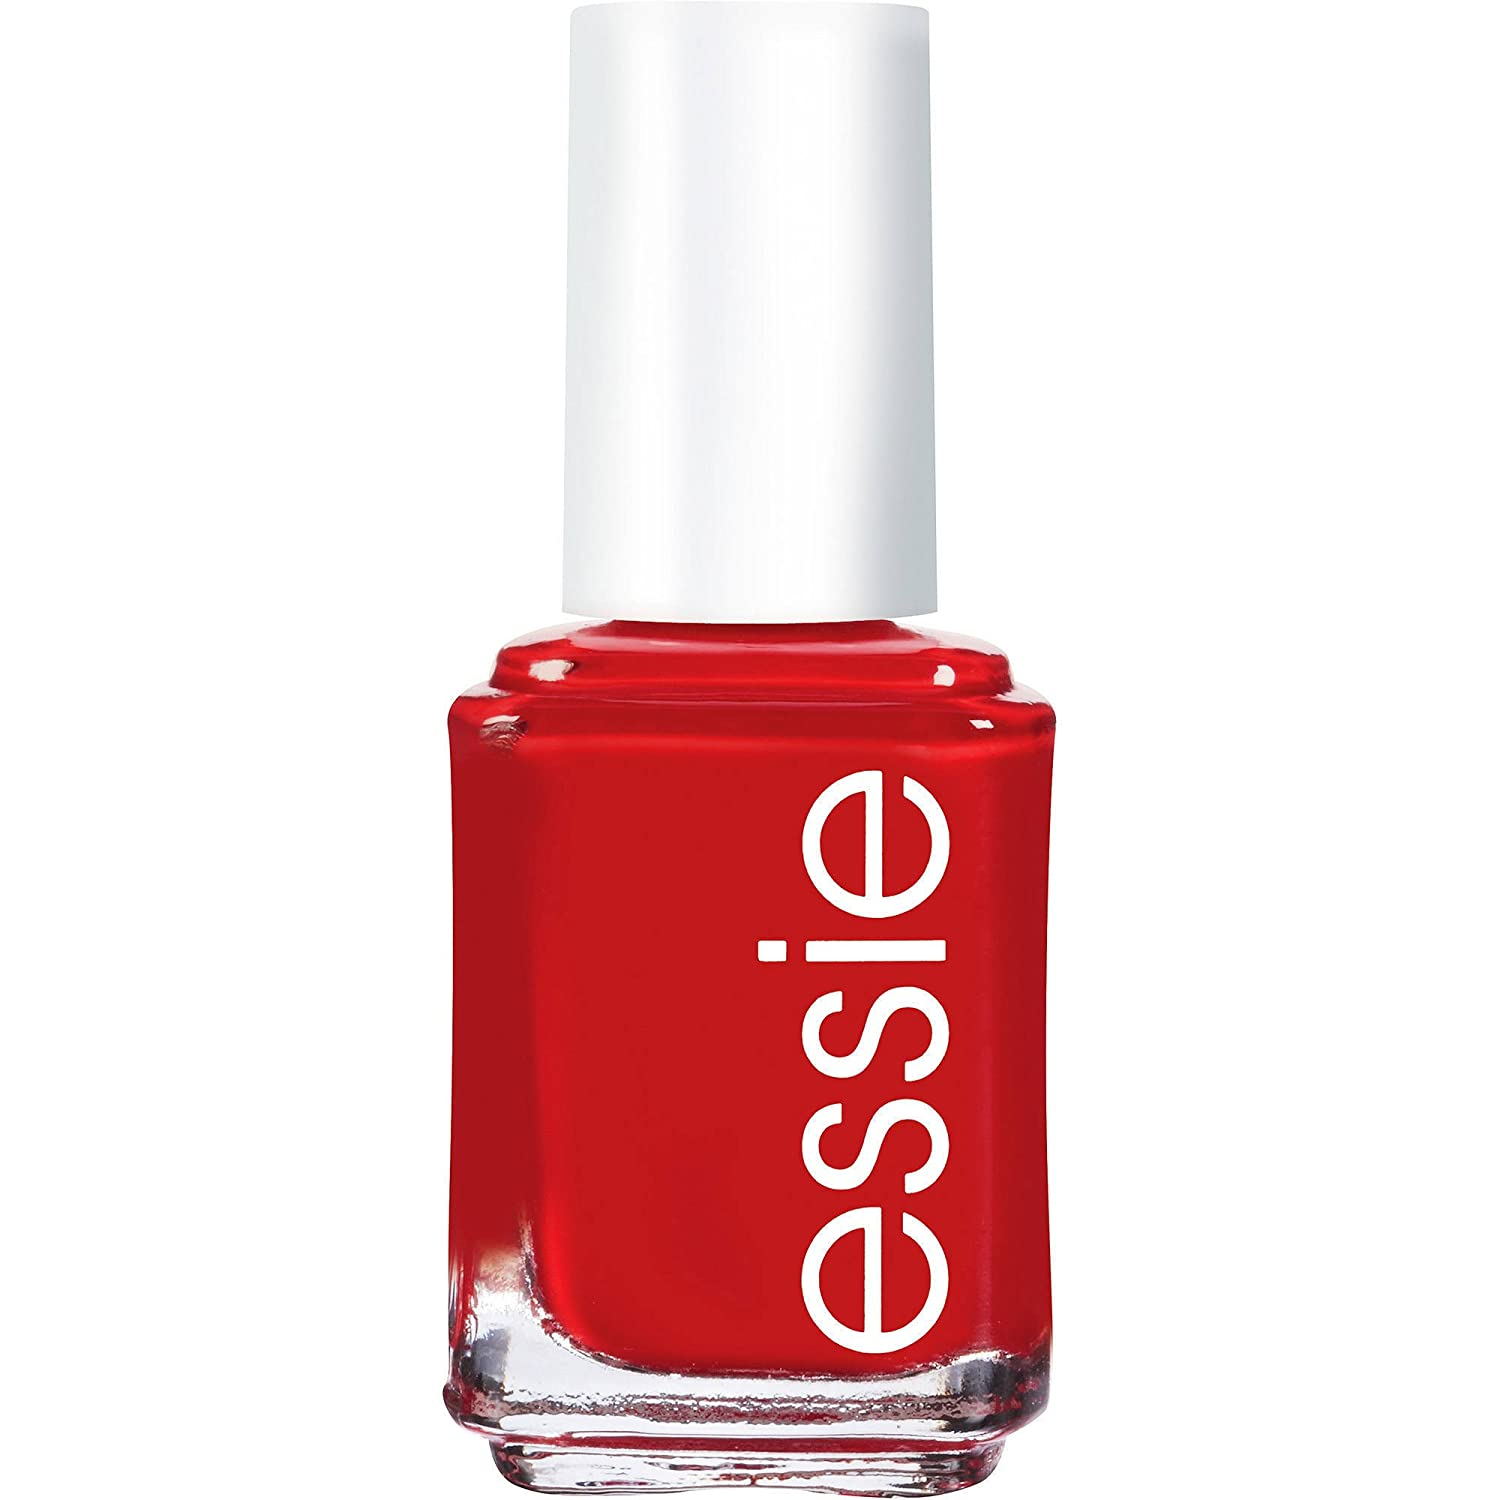 Buy Essie Nail Polish Online at Low Prices in India - Amazon.in